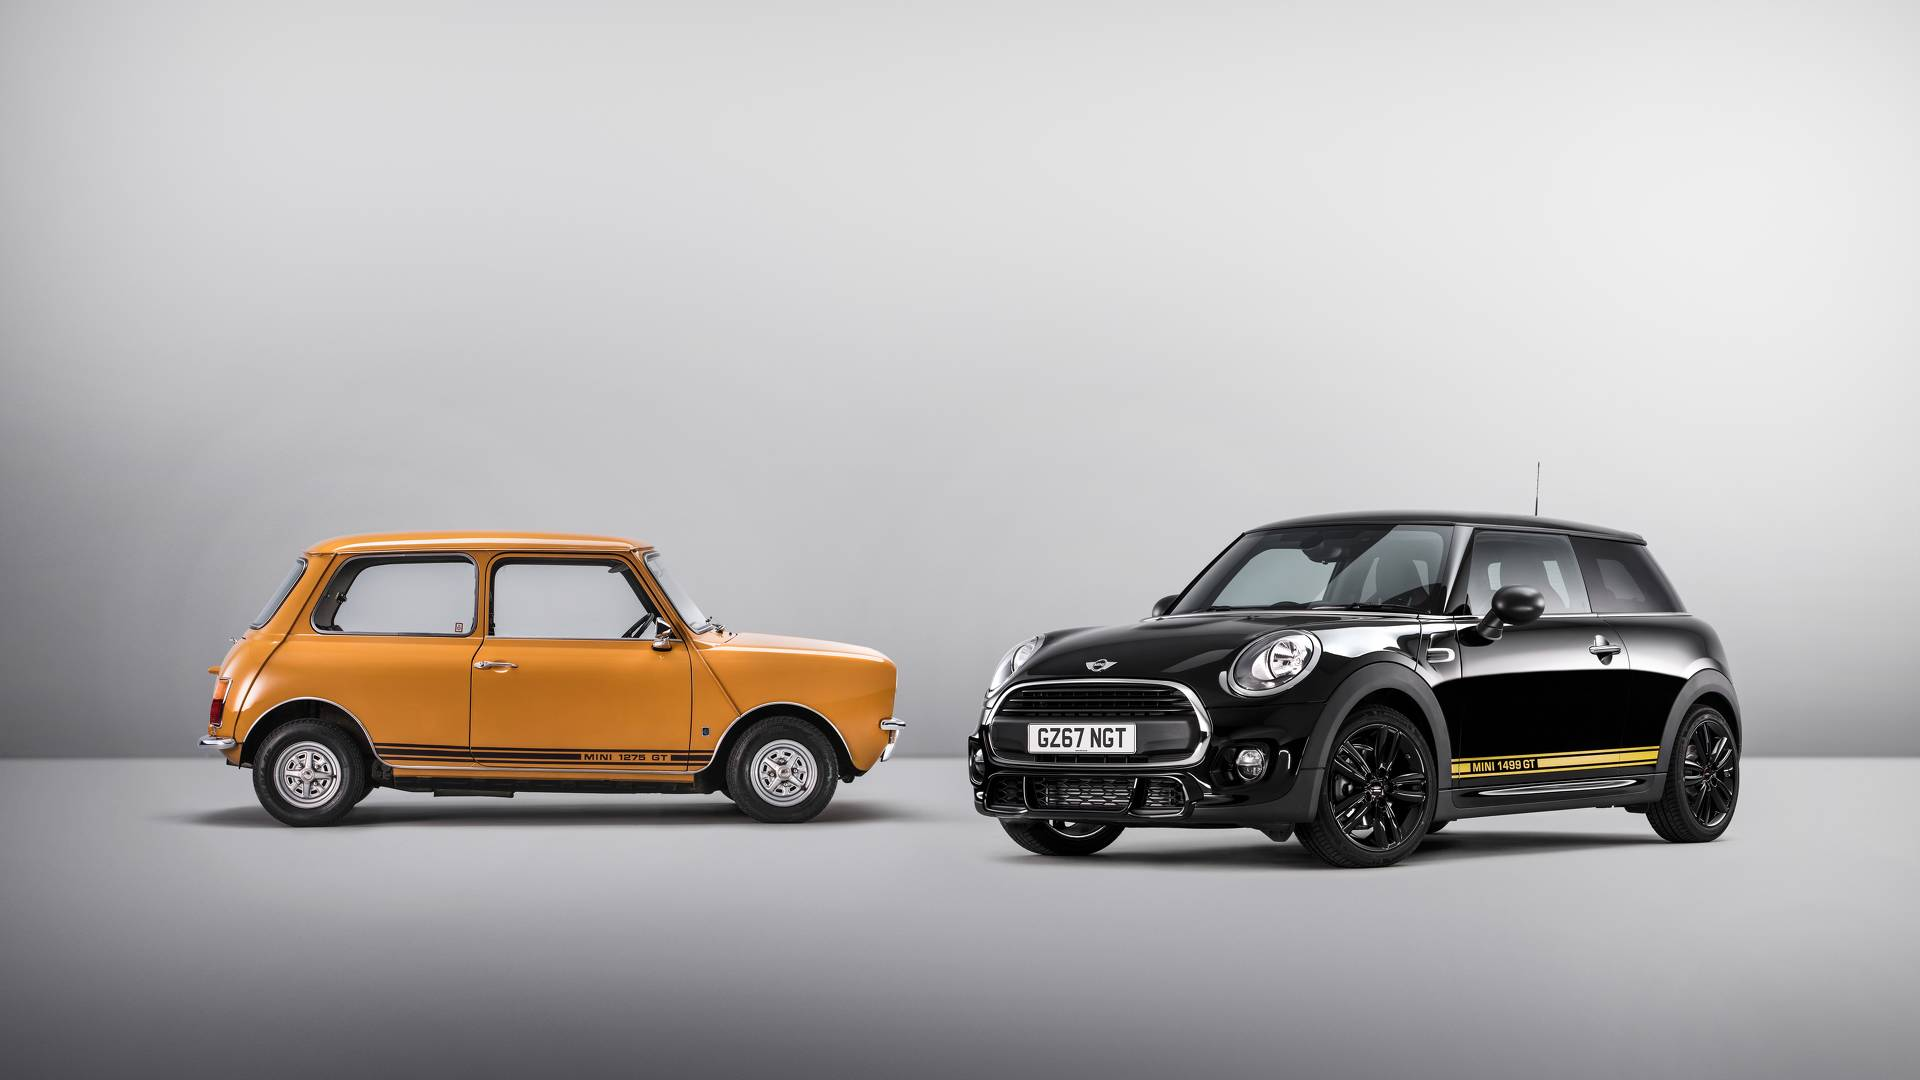 MINI One 1499 GT special edition (UK model) and Mini 1275 GT ...